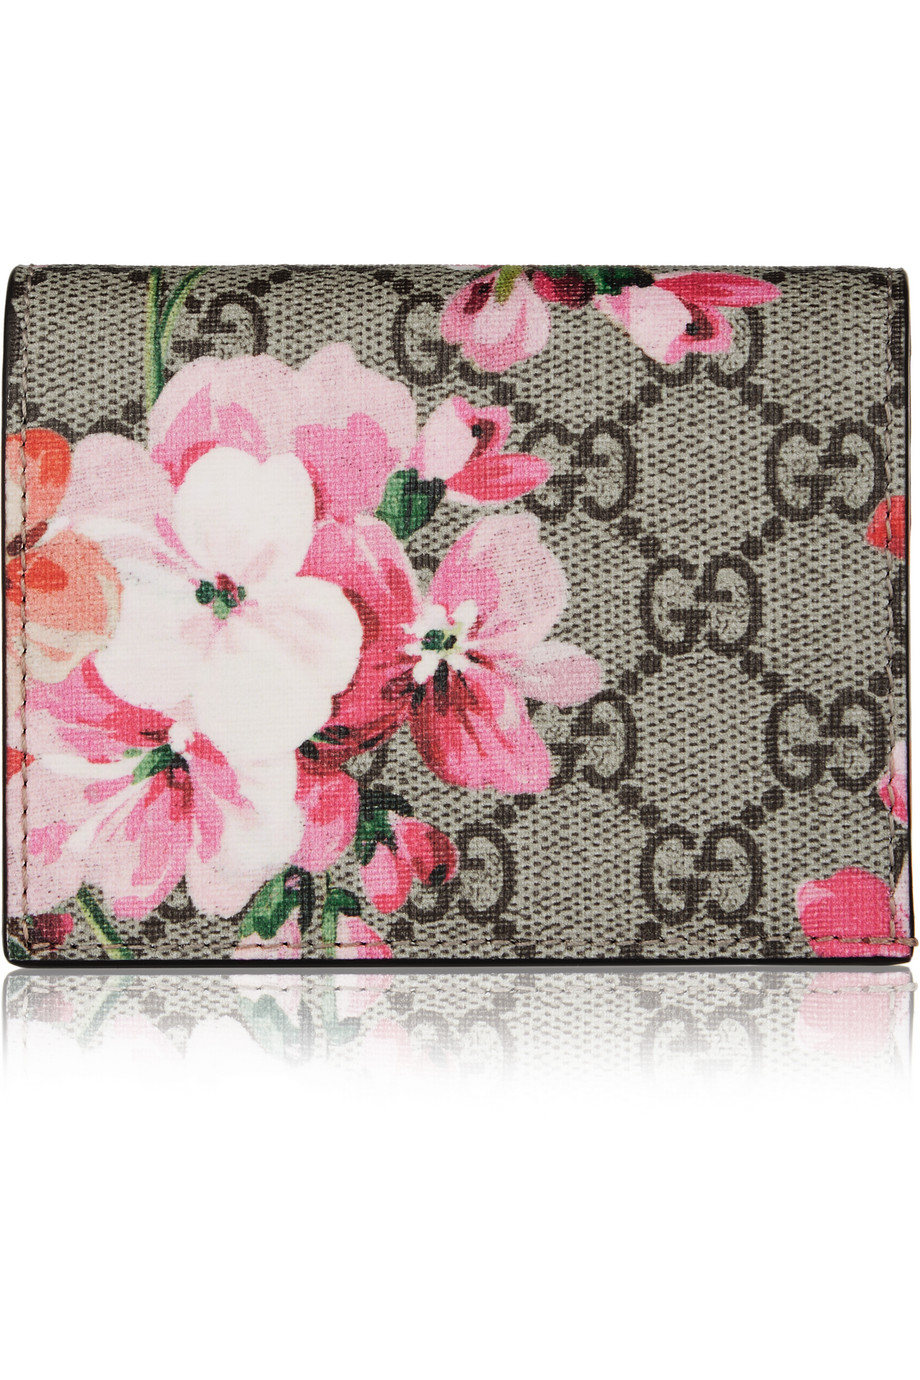 Gucci GG Blooms Floral-Print Canvas Cardholder, Pink, Women's, Size: One Size